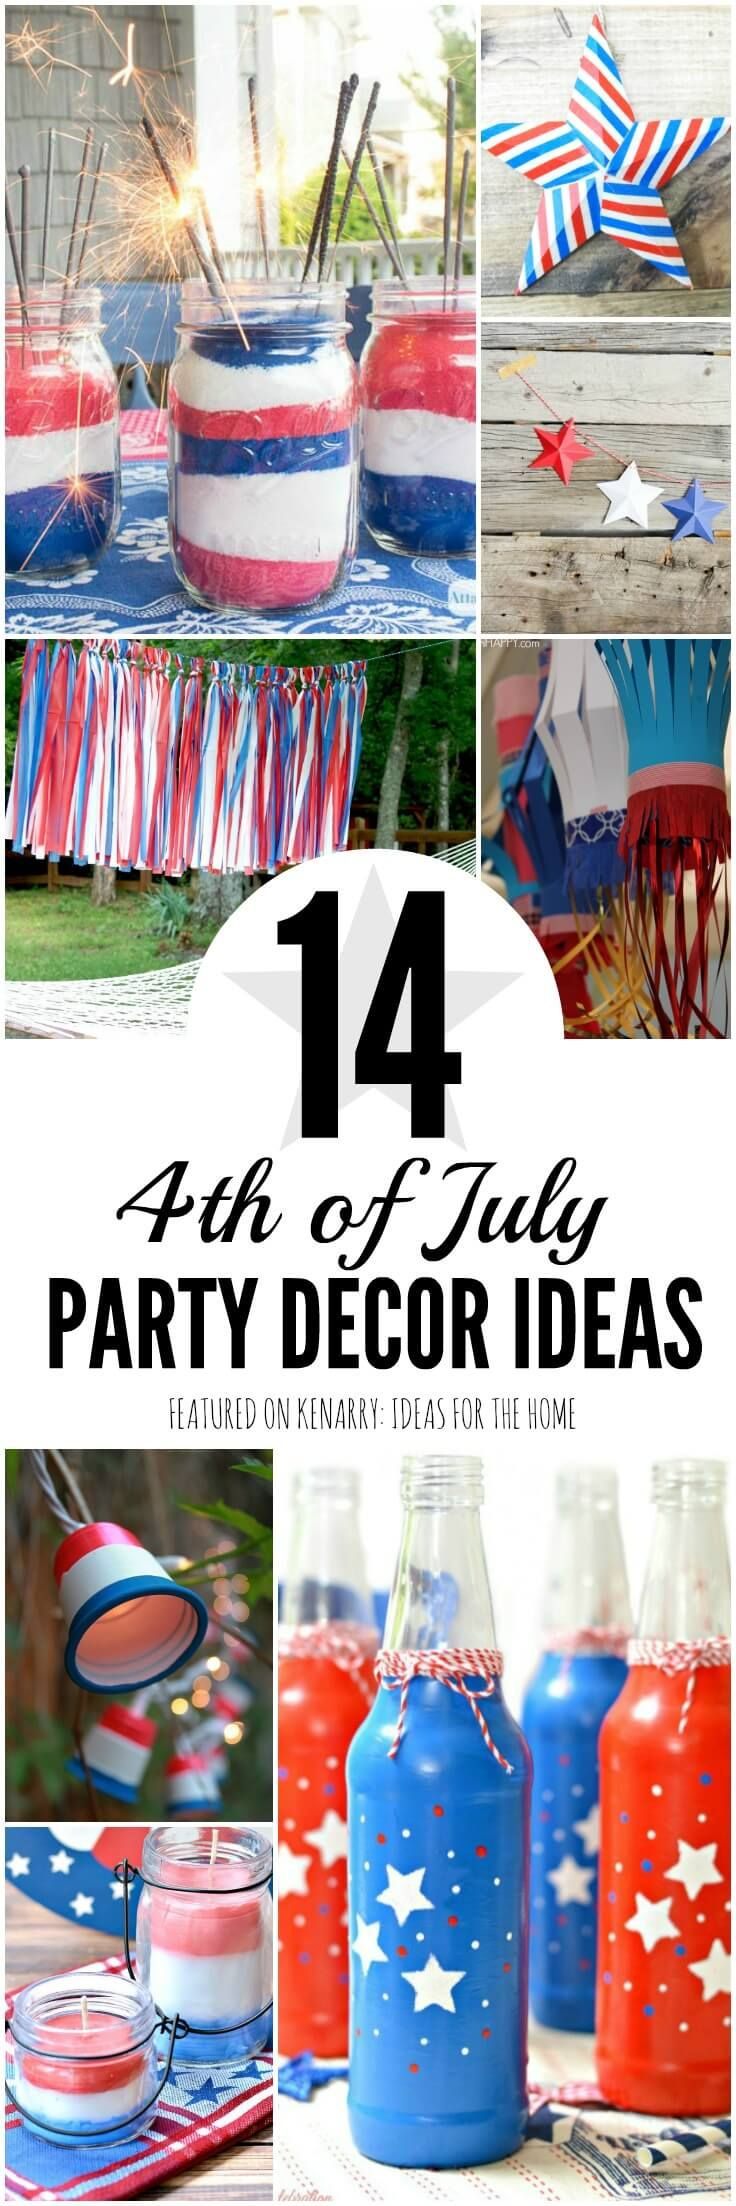 Best 25 labor day decorations ideas on pinterest for 4th of july party decoration